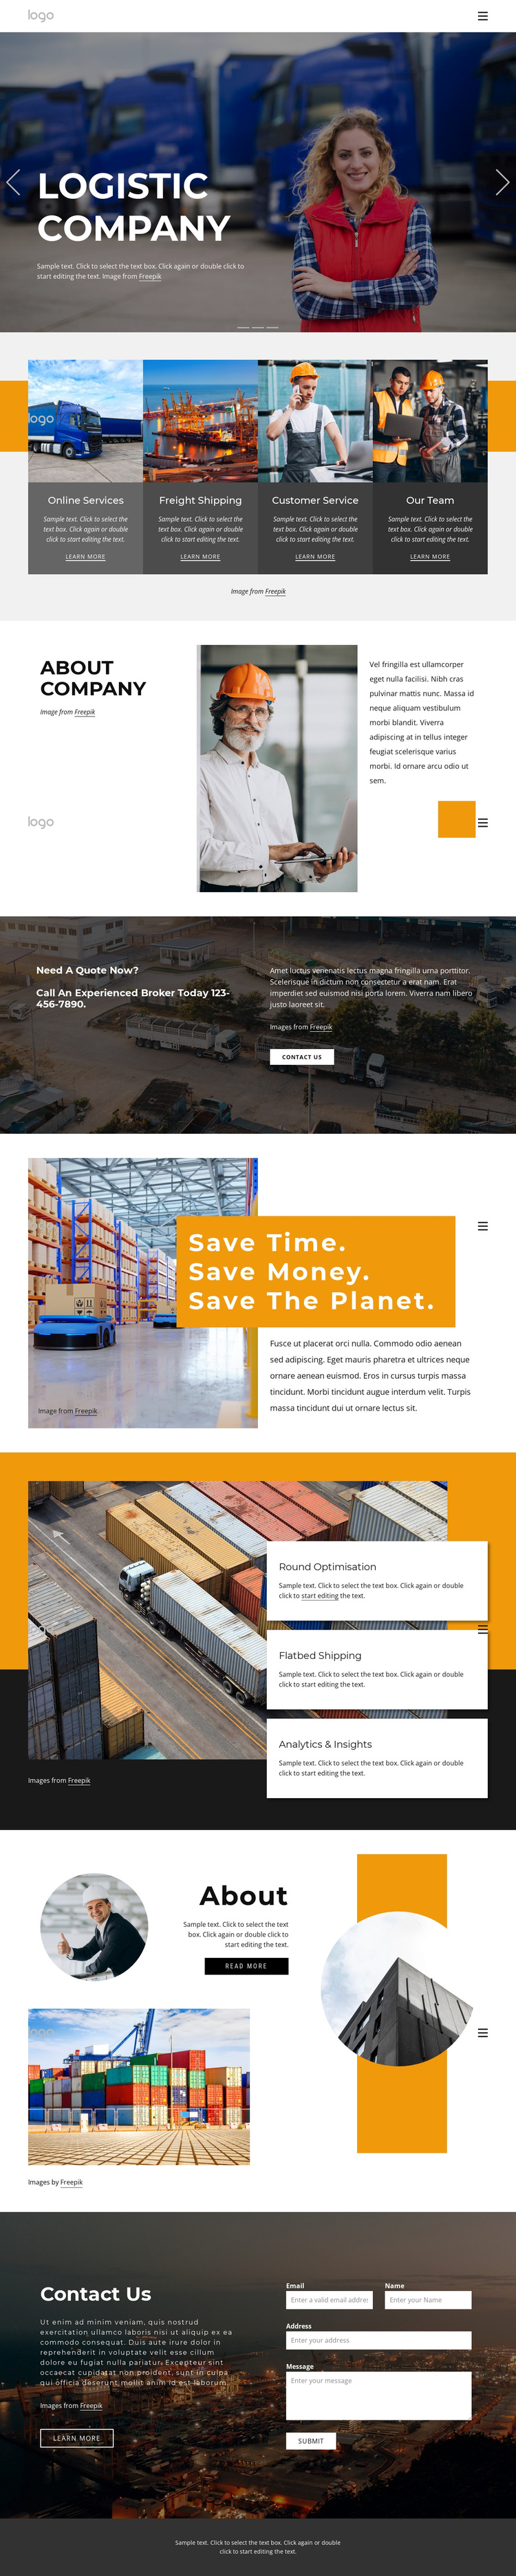 Shipping services and logistics Website Builder Software